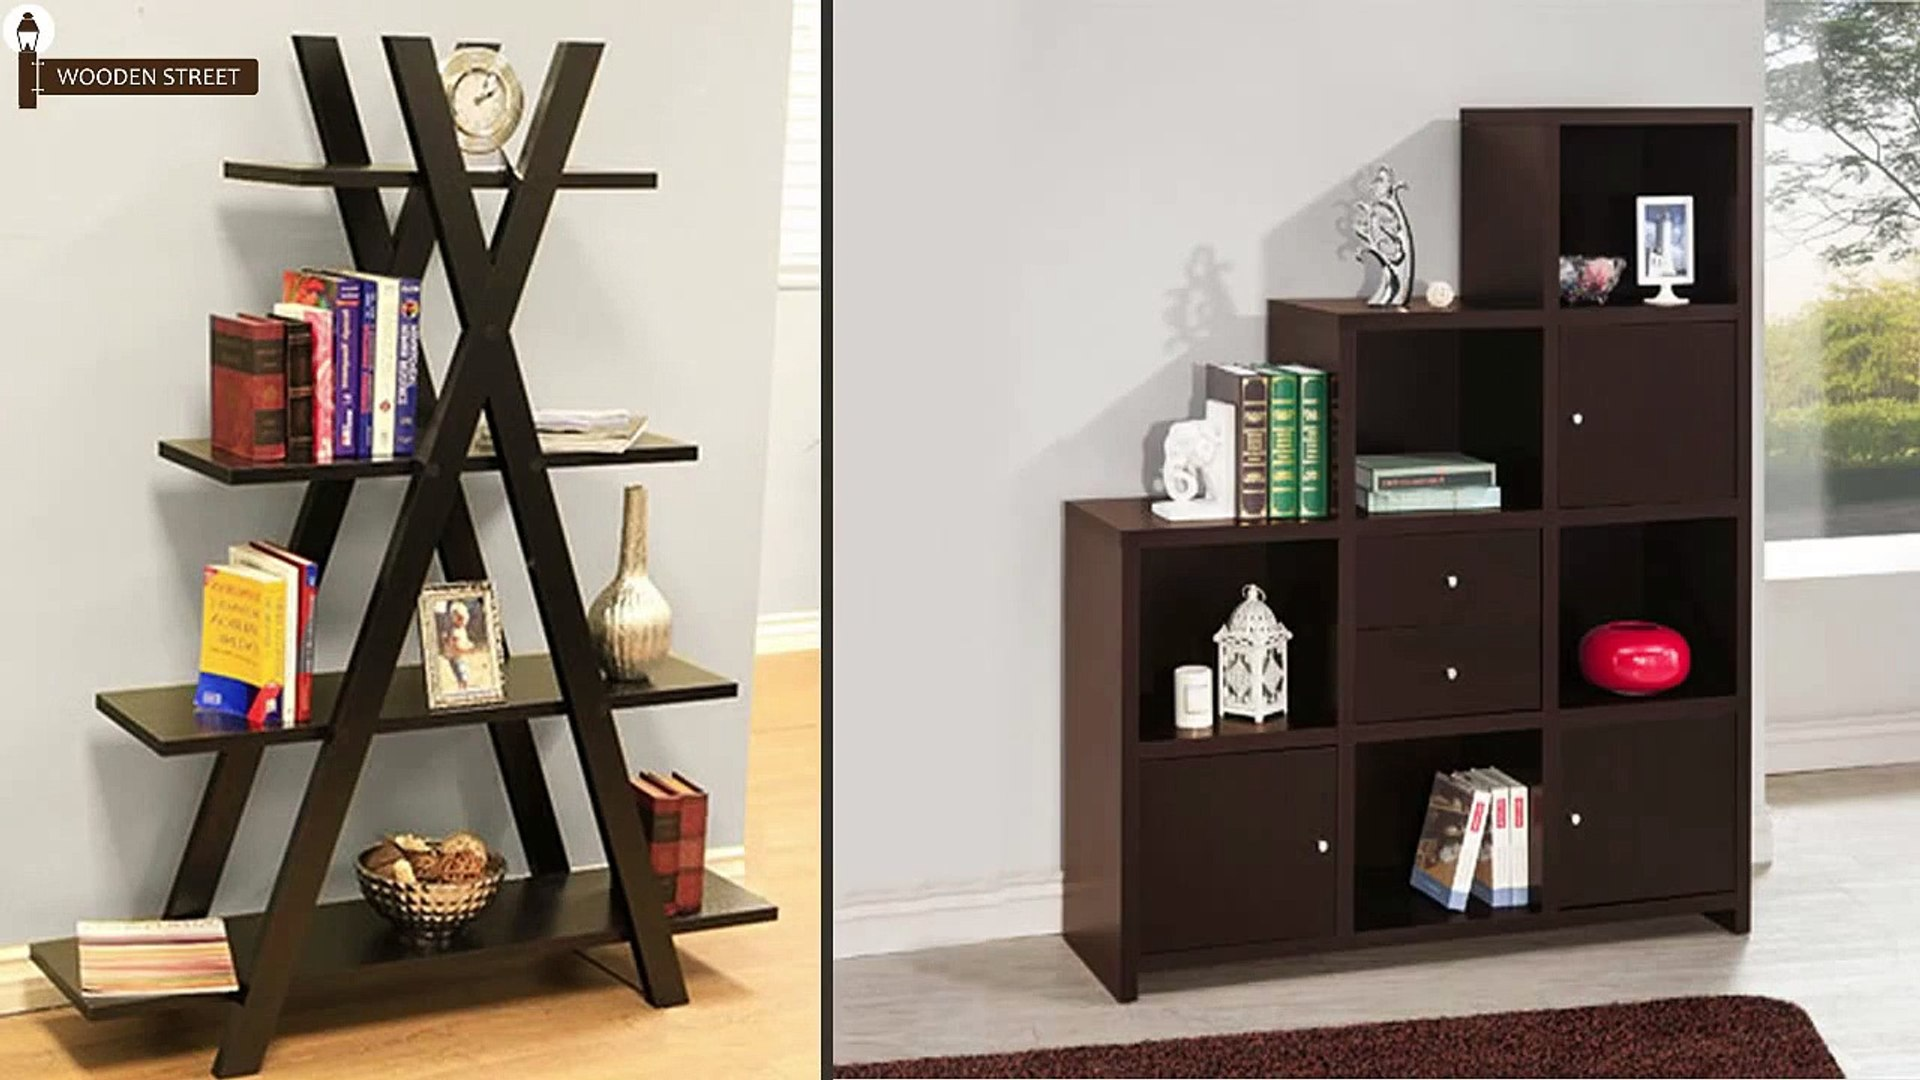 Buy Book Shelf Online Wooden Book Shelves Woodenstreet